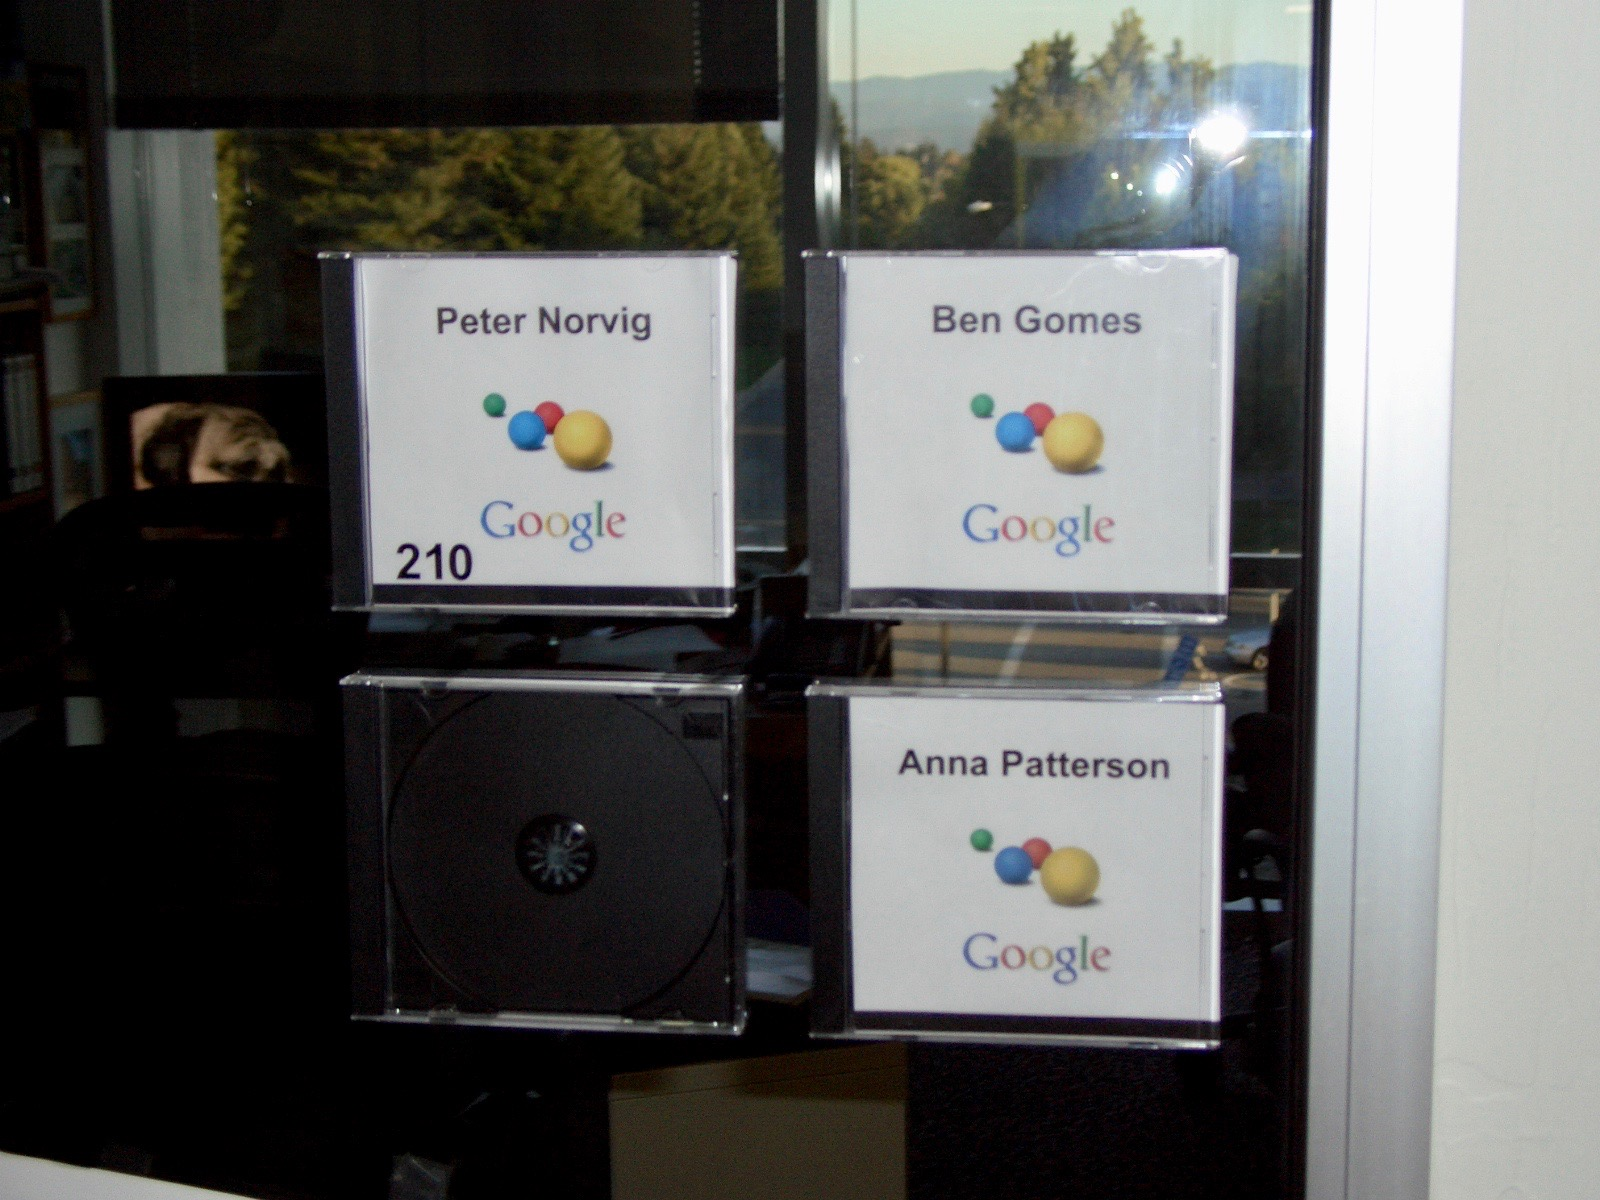 Peter Norvig's shared office